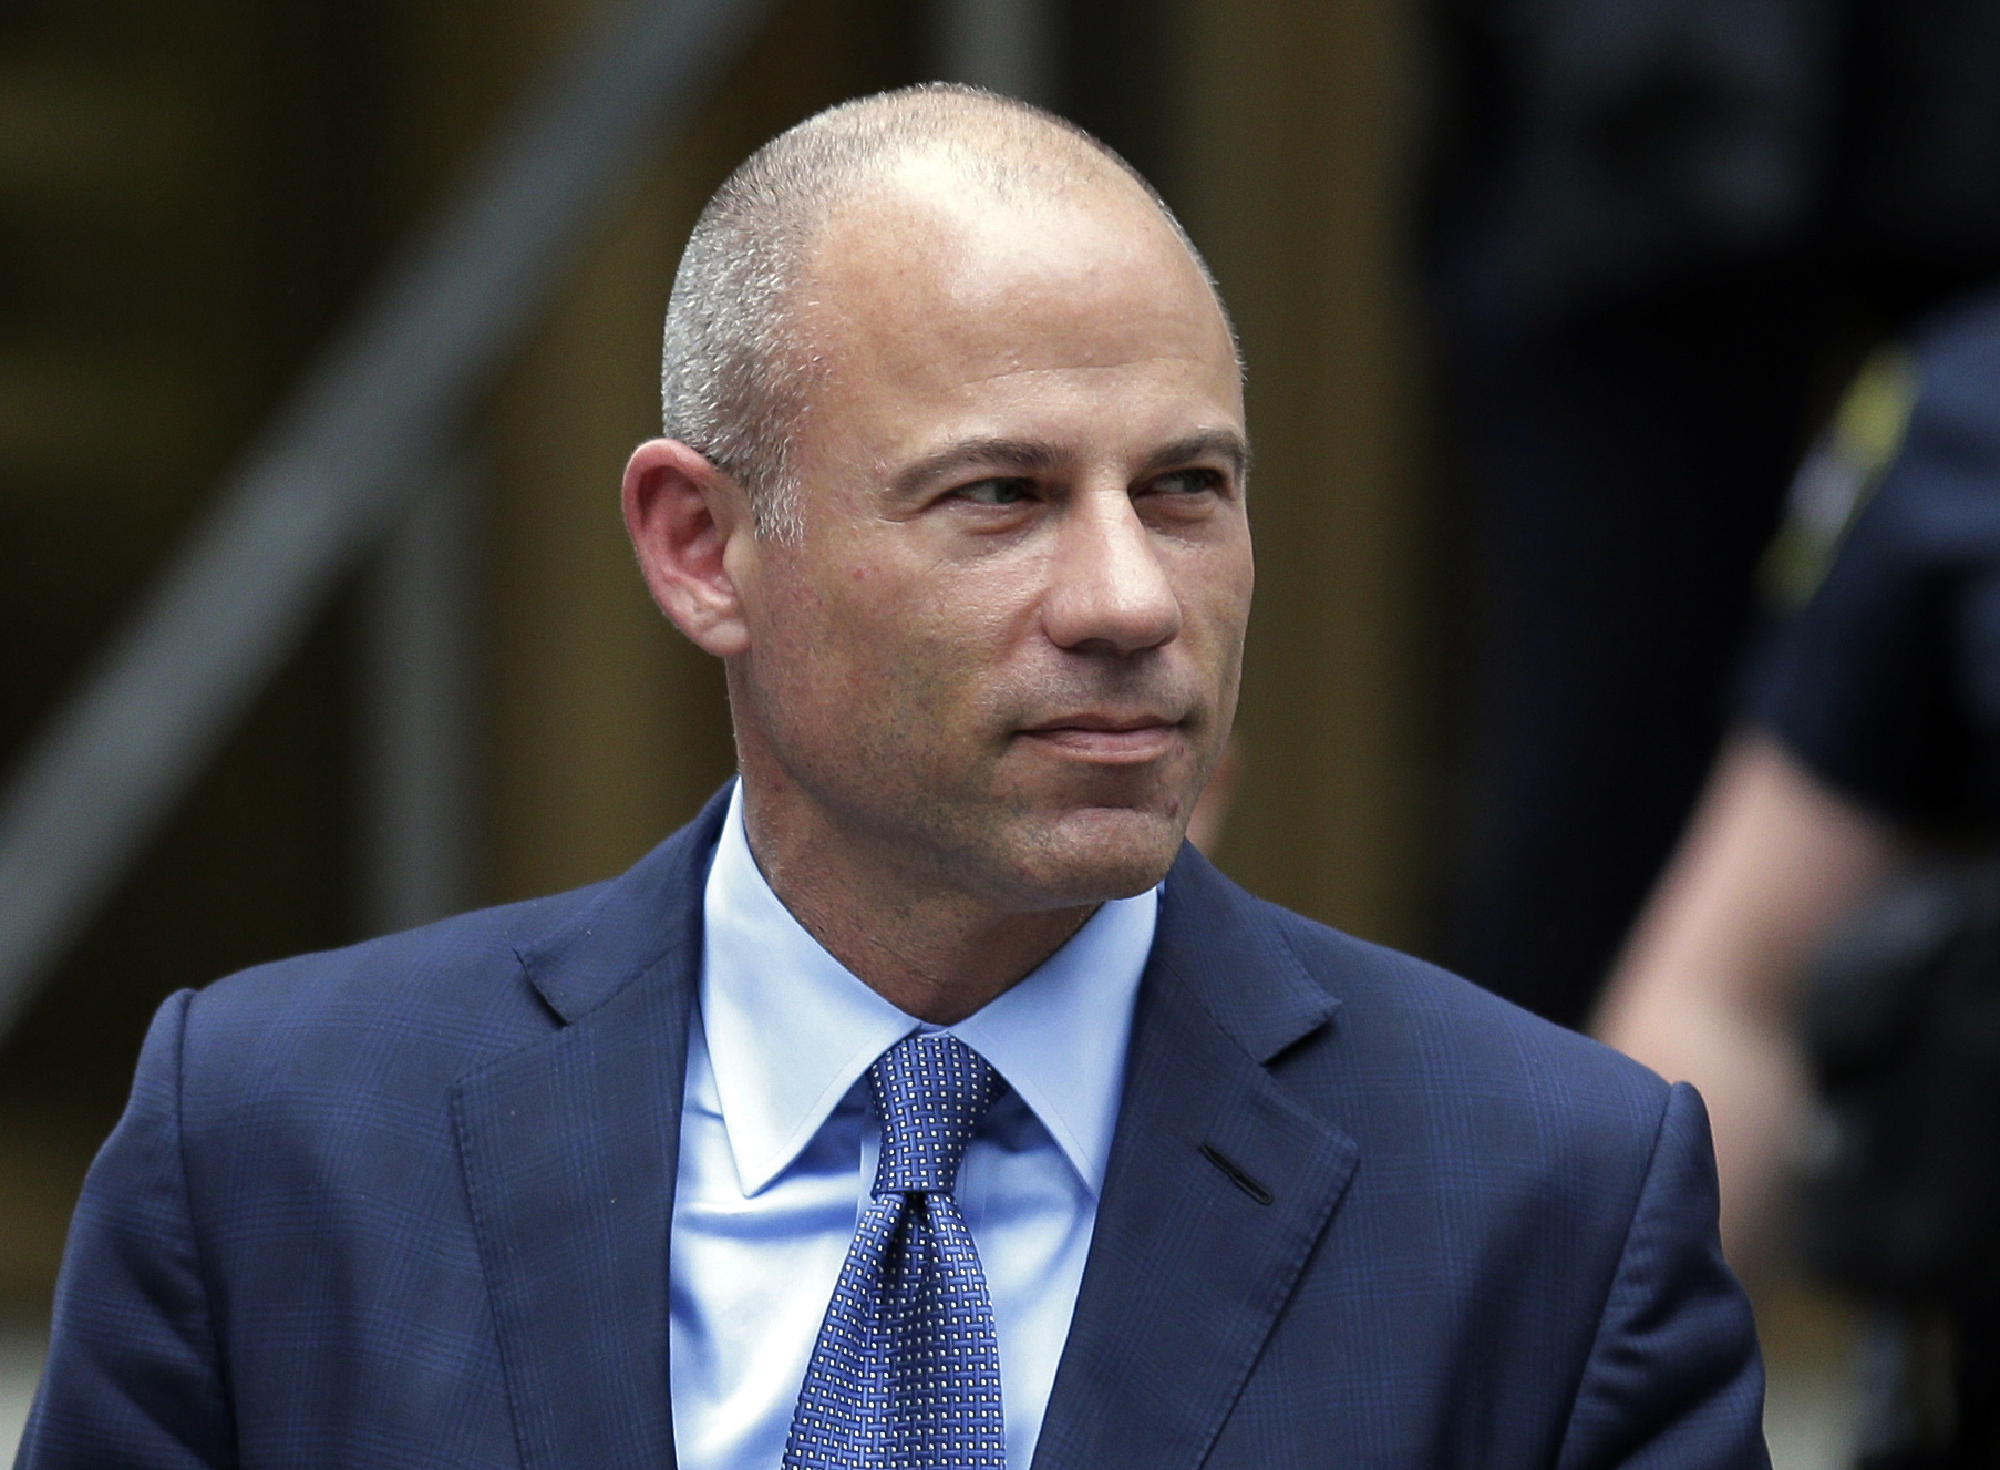 In this May 28, 2019, file photo, California attorney Michael Avenatti leaves a courthouse in New York following a hearing.